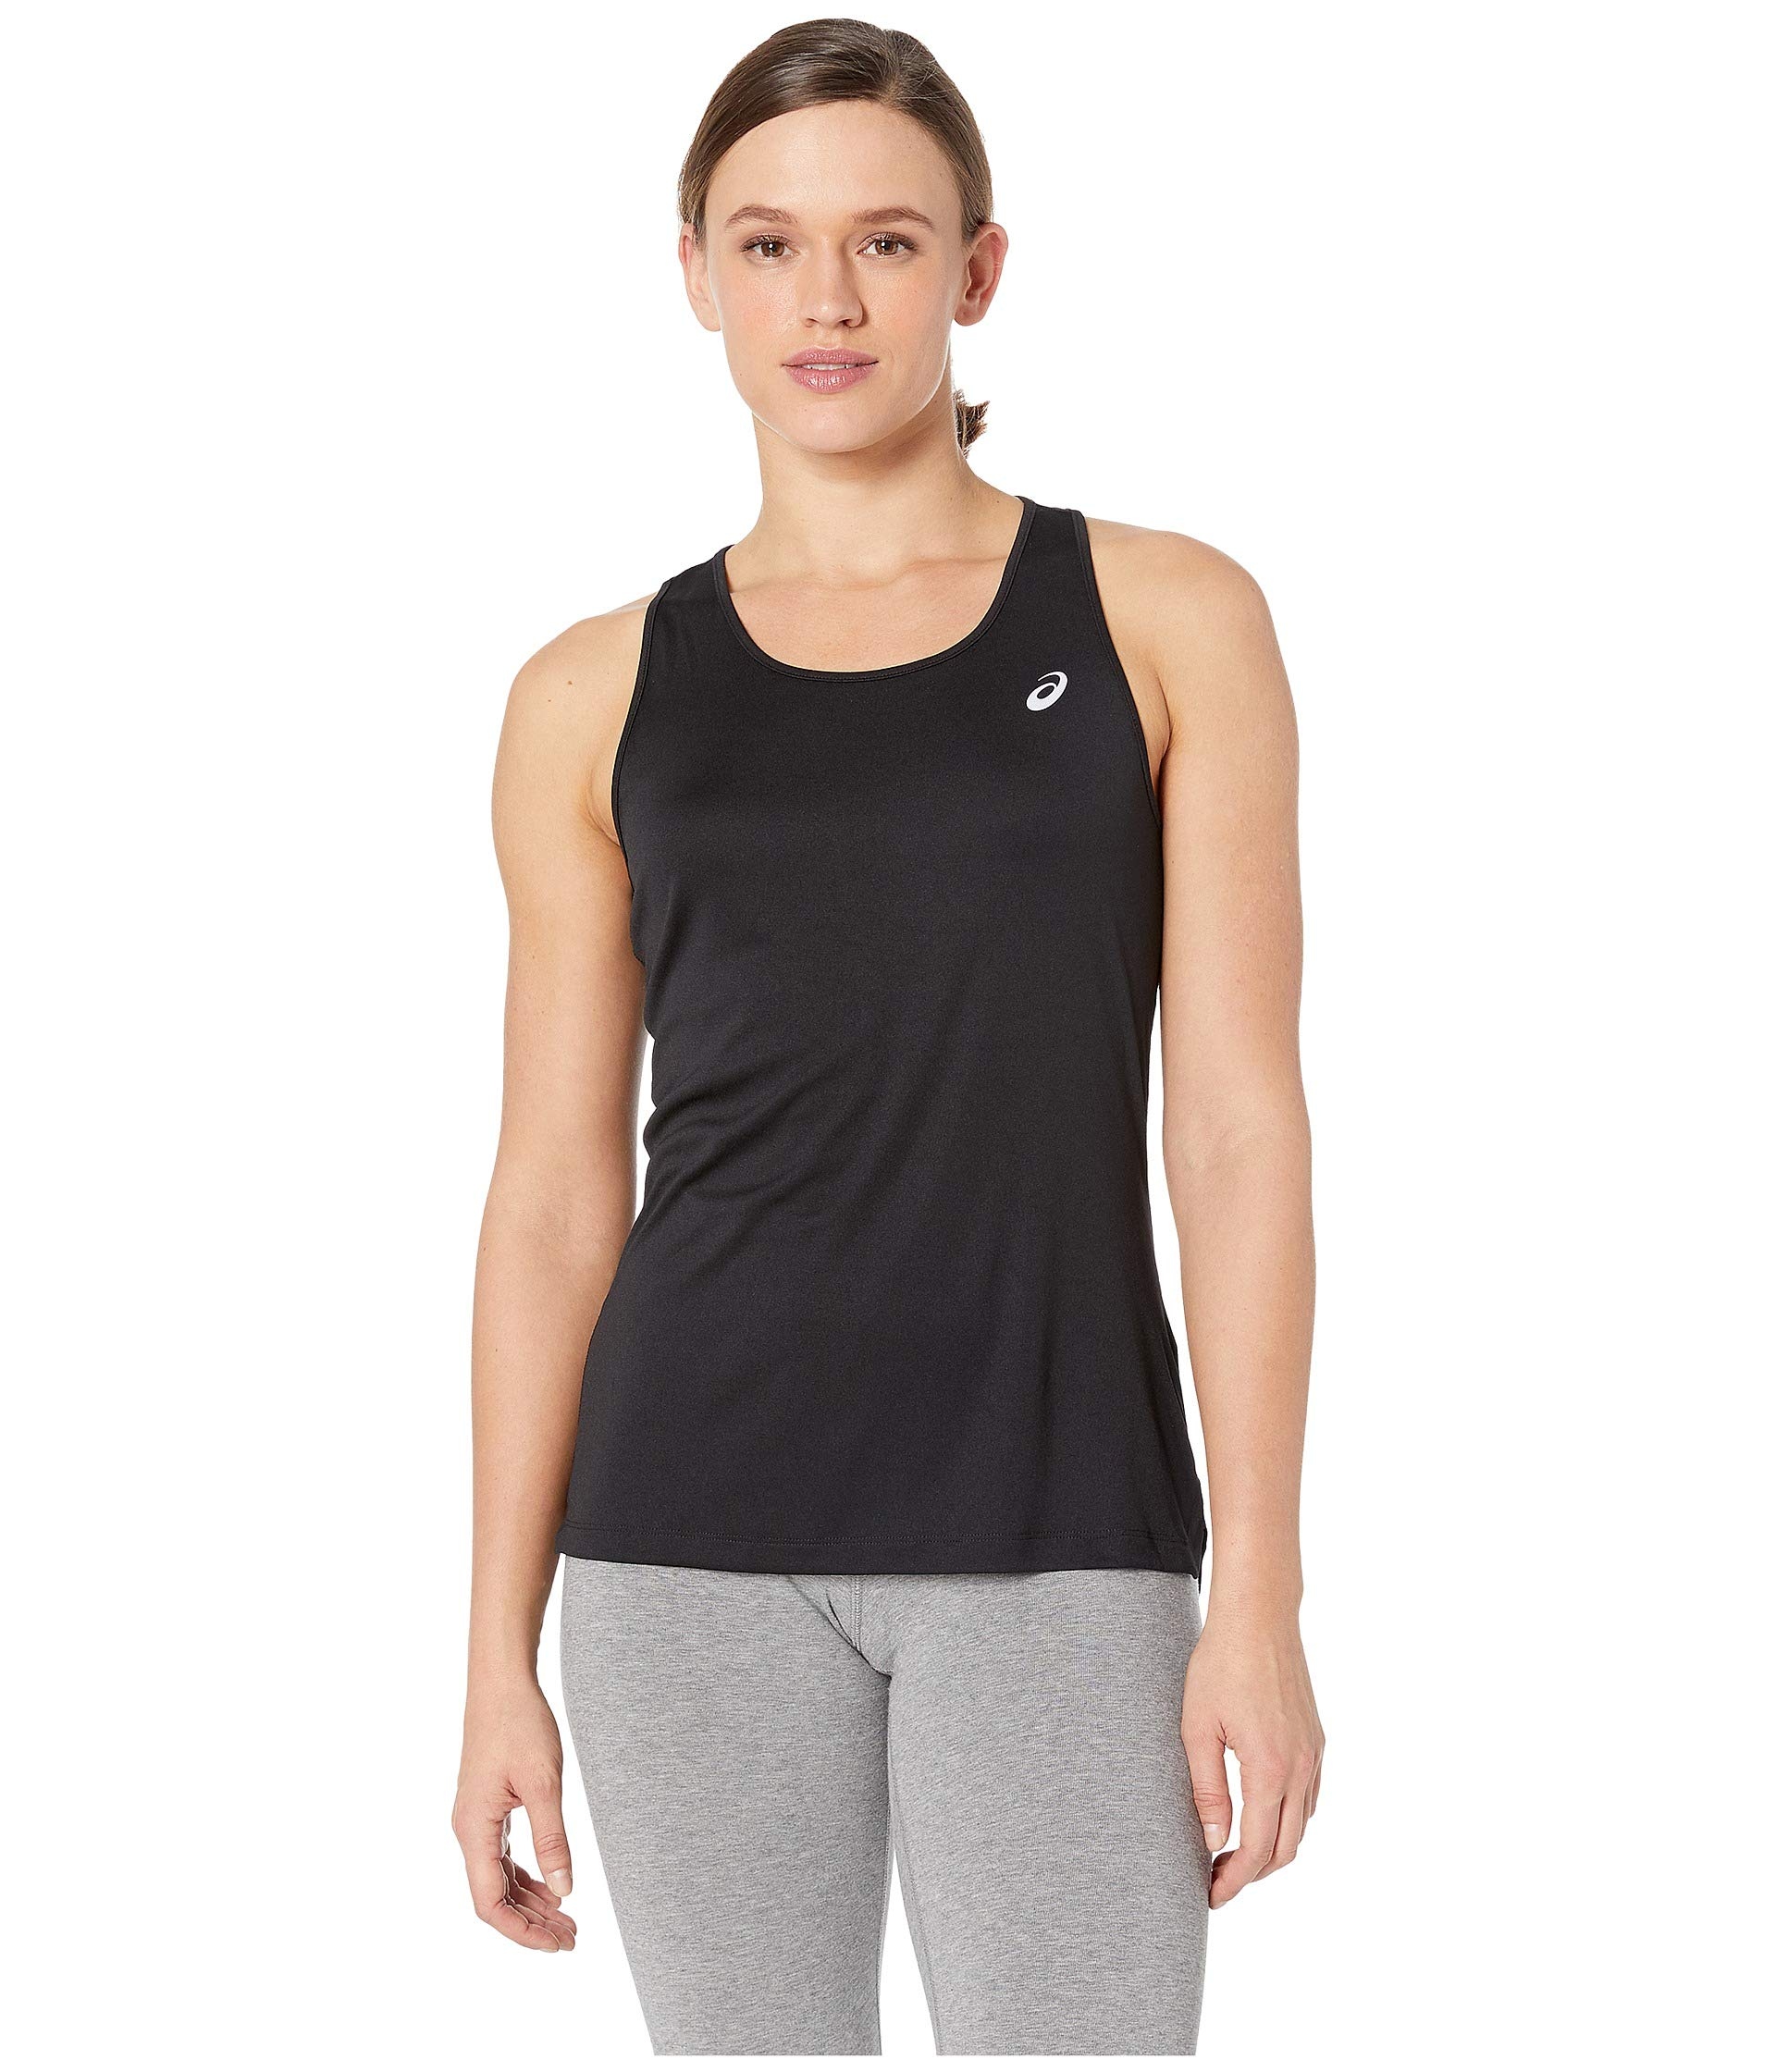 ASICS Women's Silver Tank, Performance Black, Medium by ASICS